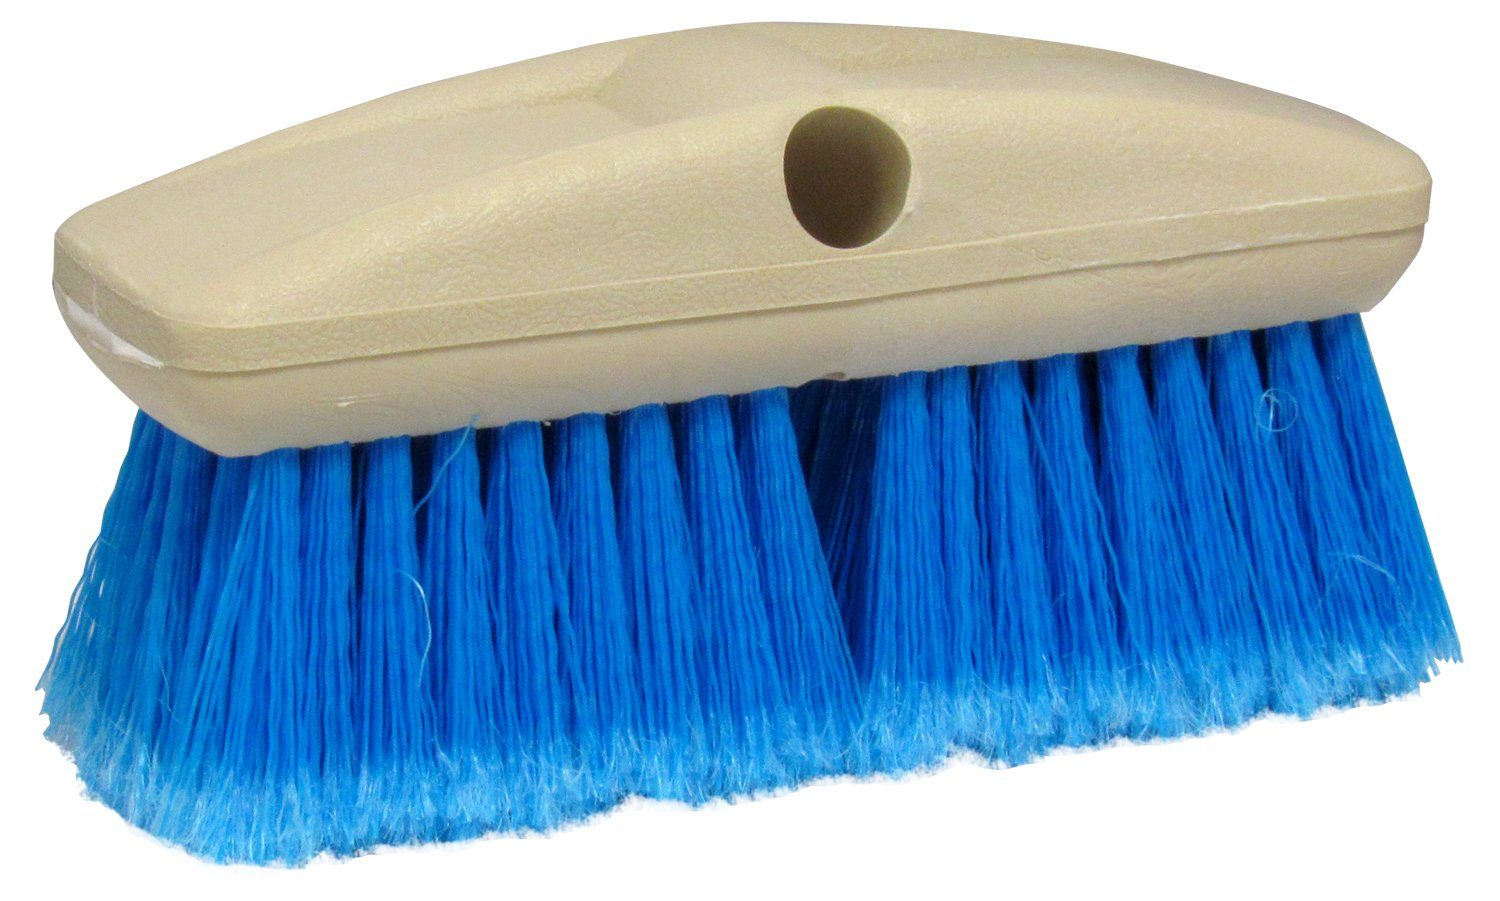 Star Brite Standard 8' Brush Head 040013